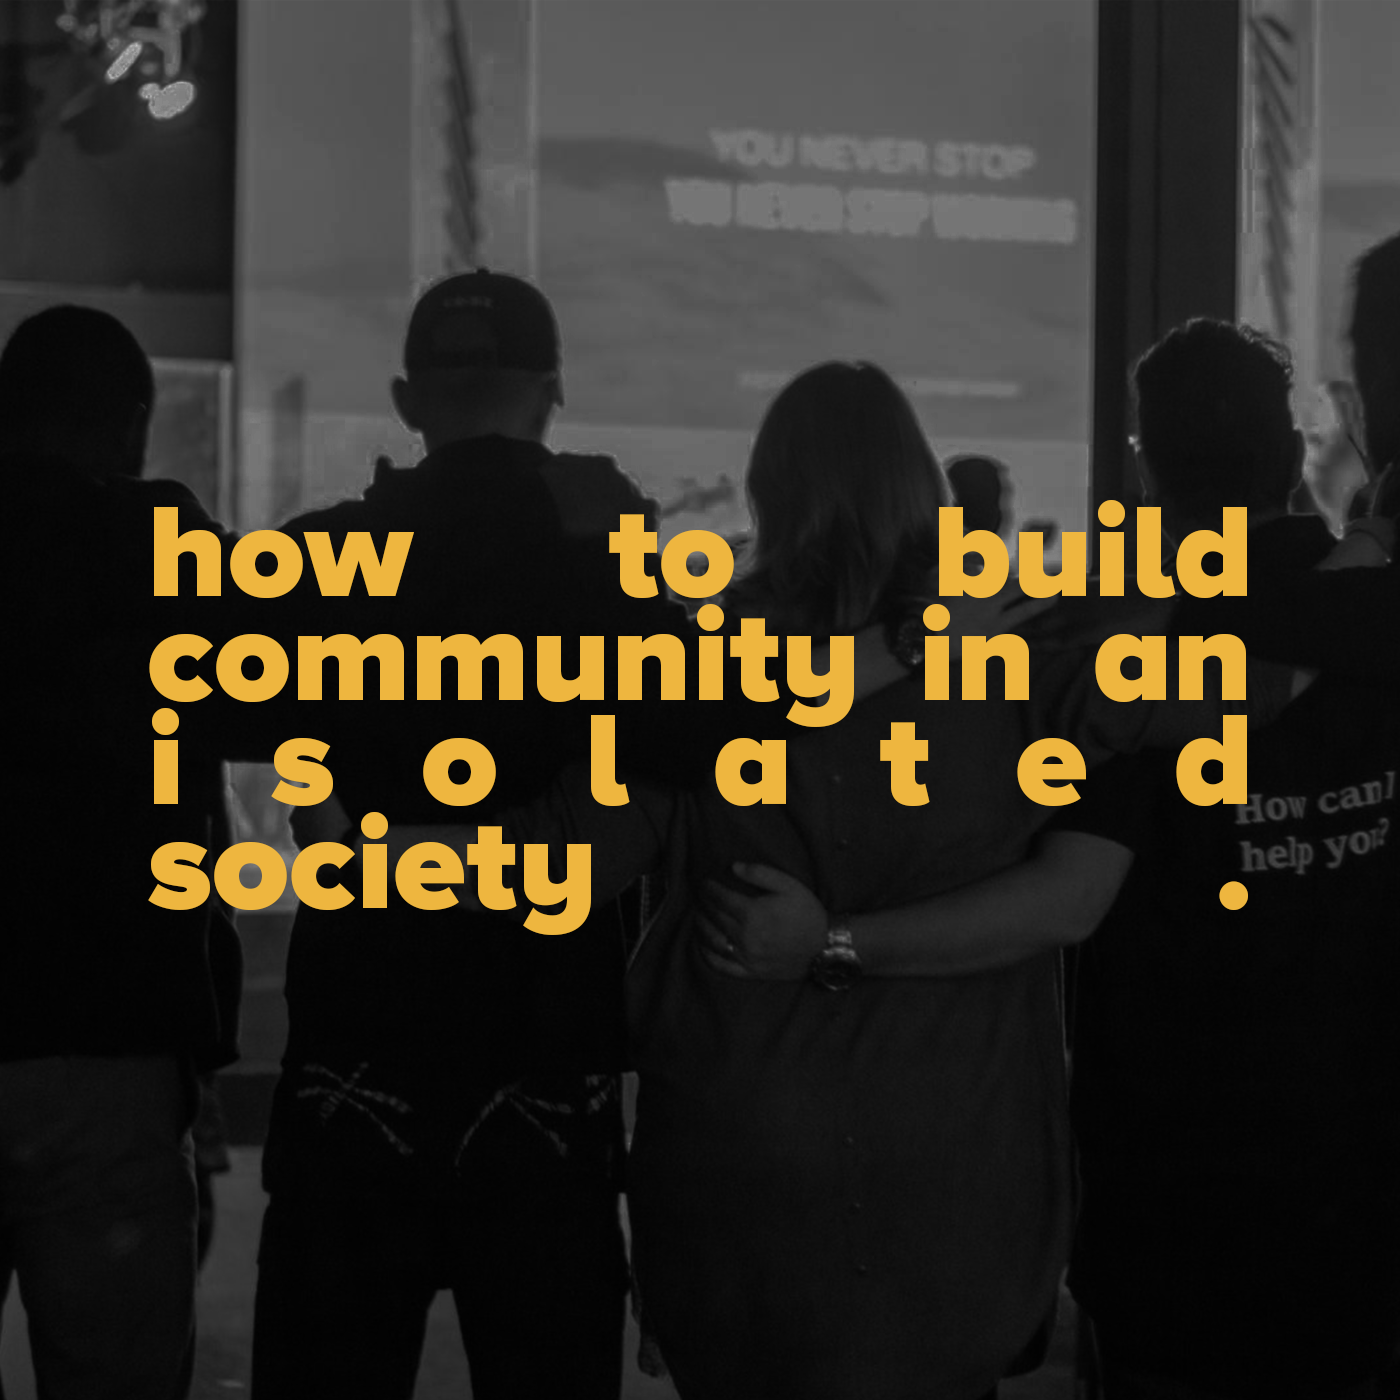 How to build community in an isolated society